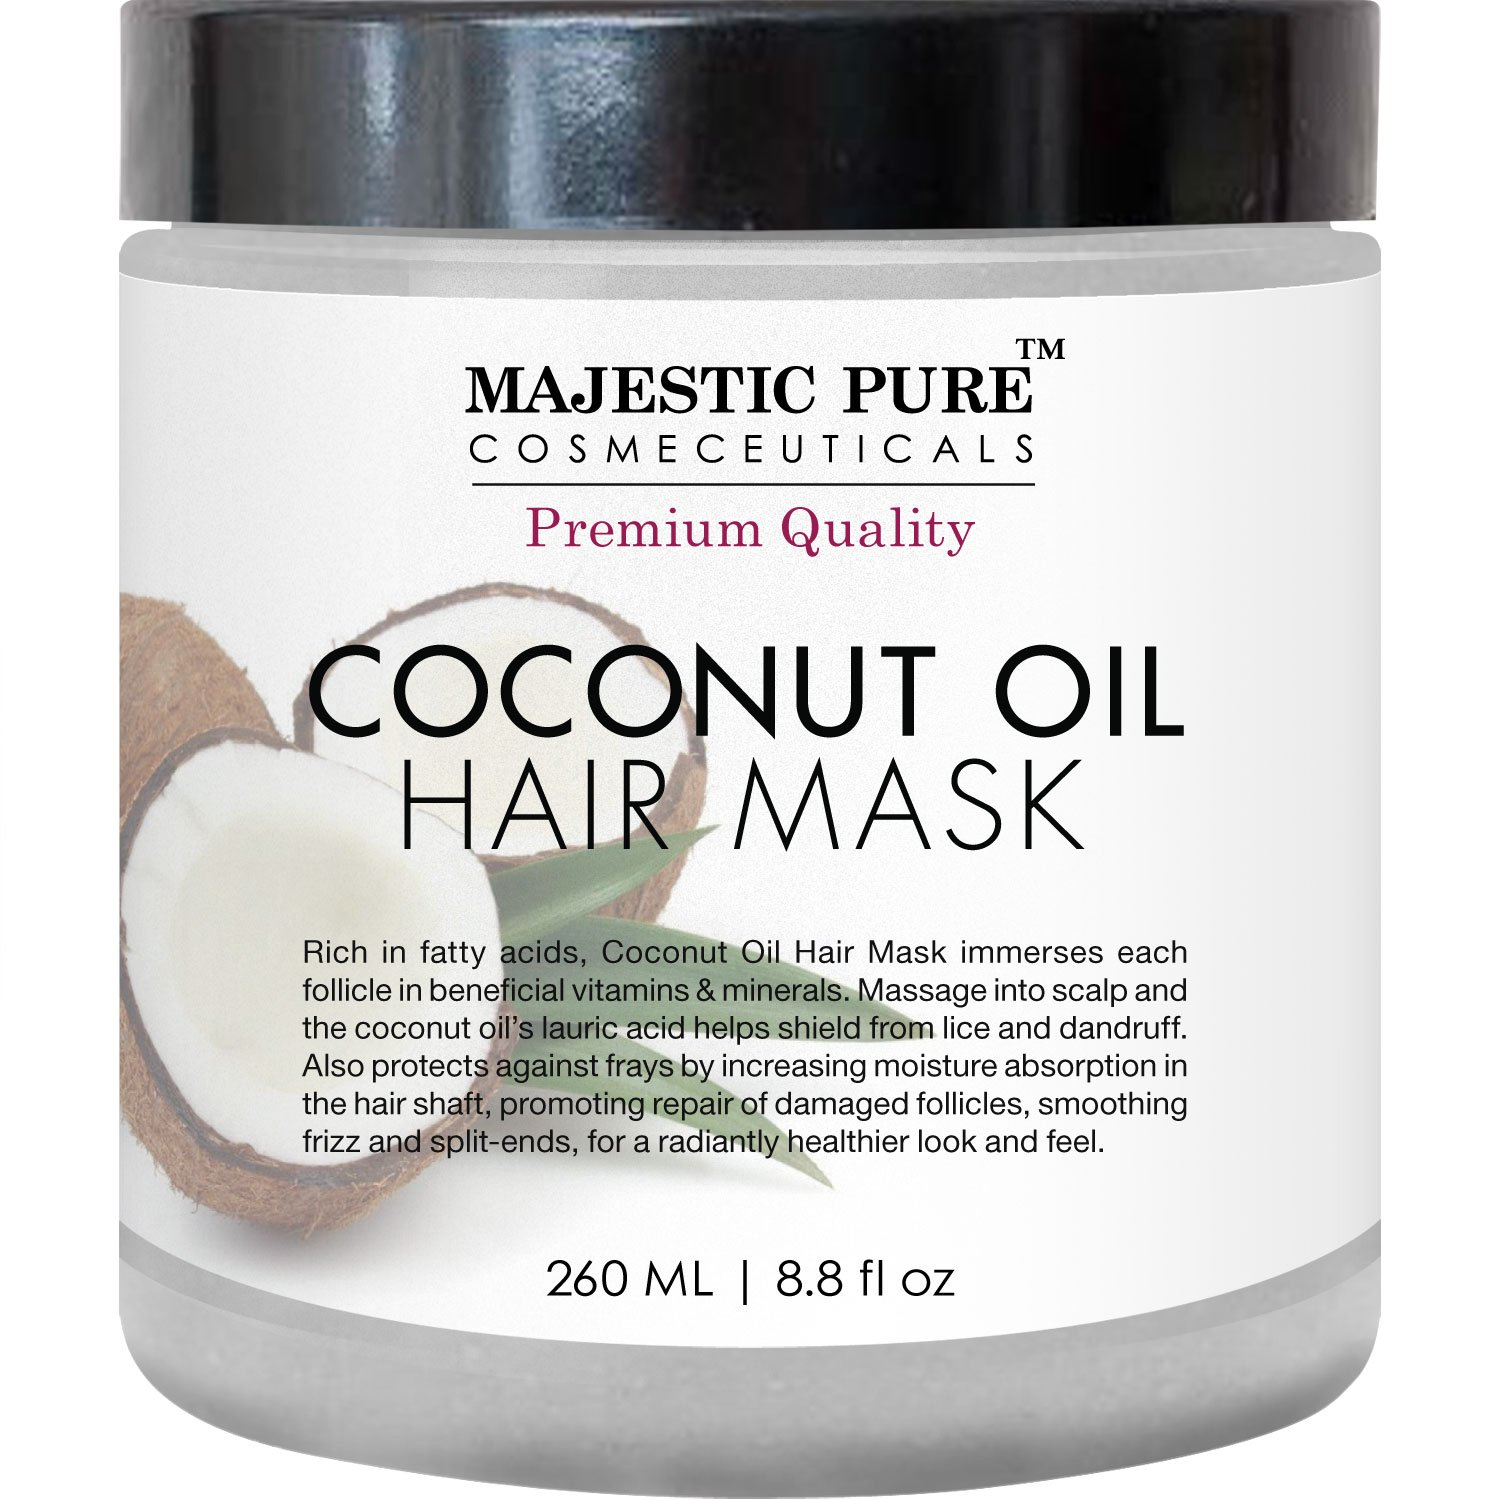 Majestic Pure Coconut Oil Hair Mask, Offers Natural Hair Care Treatment, Hydrating & Restorative Mask Restores Shine, Nourishes Scalp & Provides Deep Conditioning for Dry & Damaged Hair, 8.8 fl oz by Majestic Pure